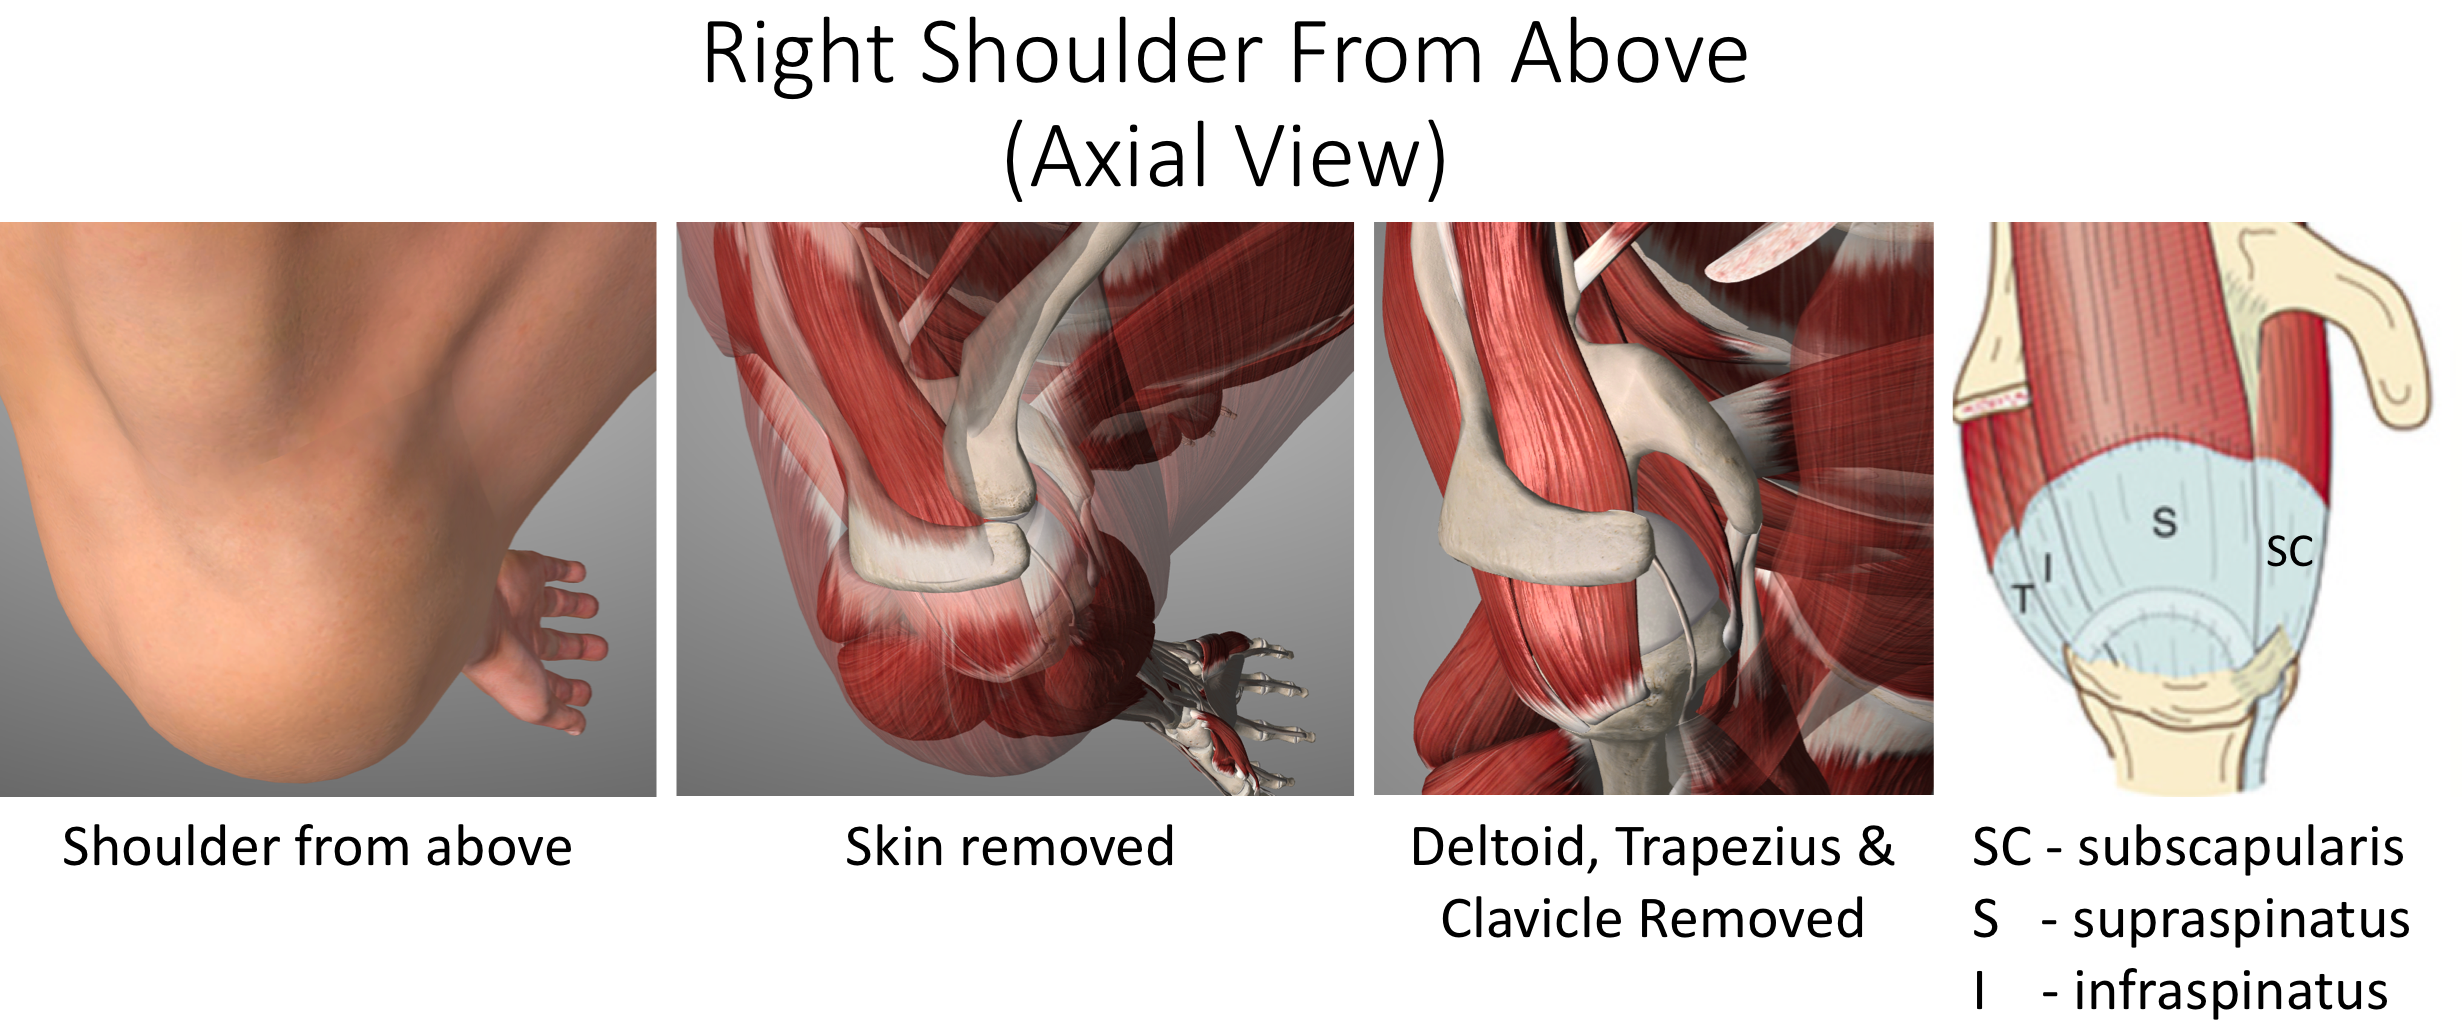 Fig 1 C. - Shoulder from above